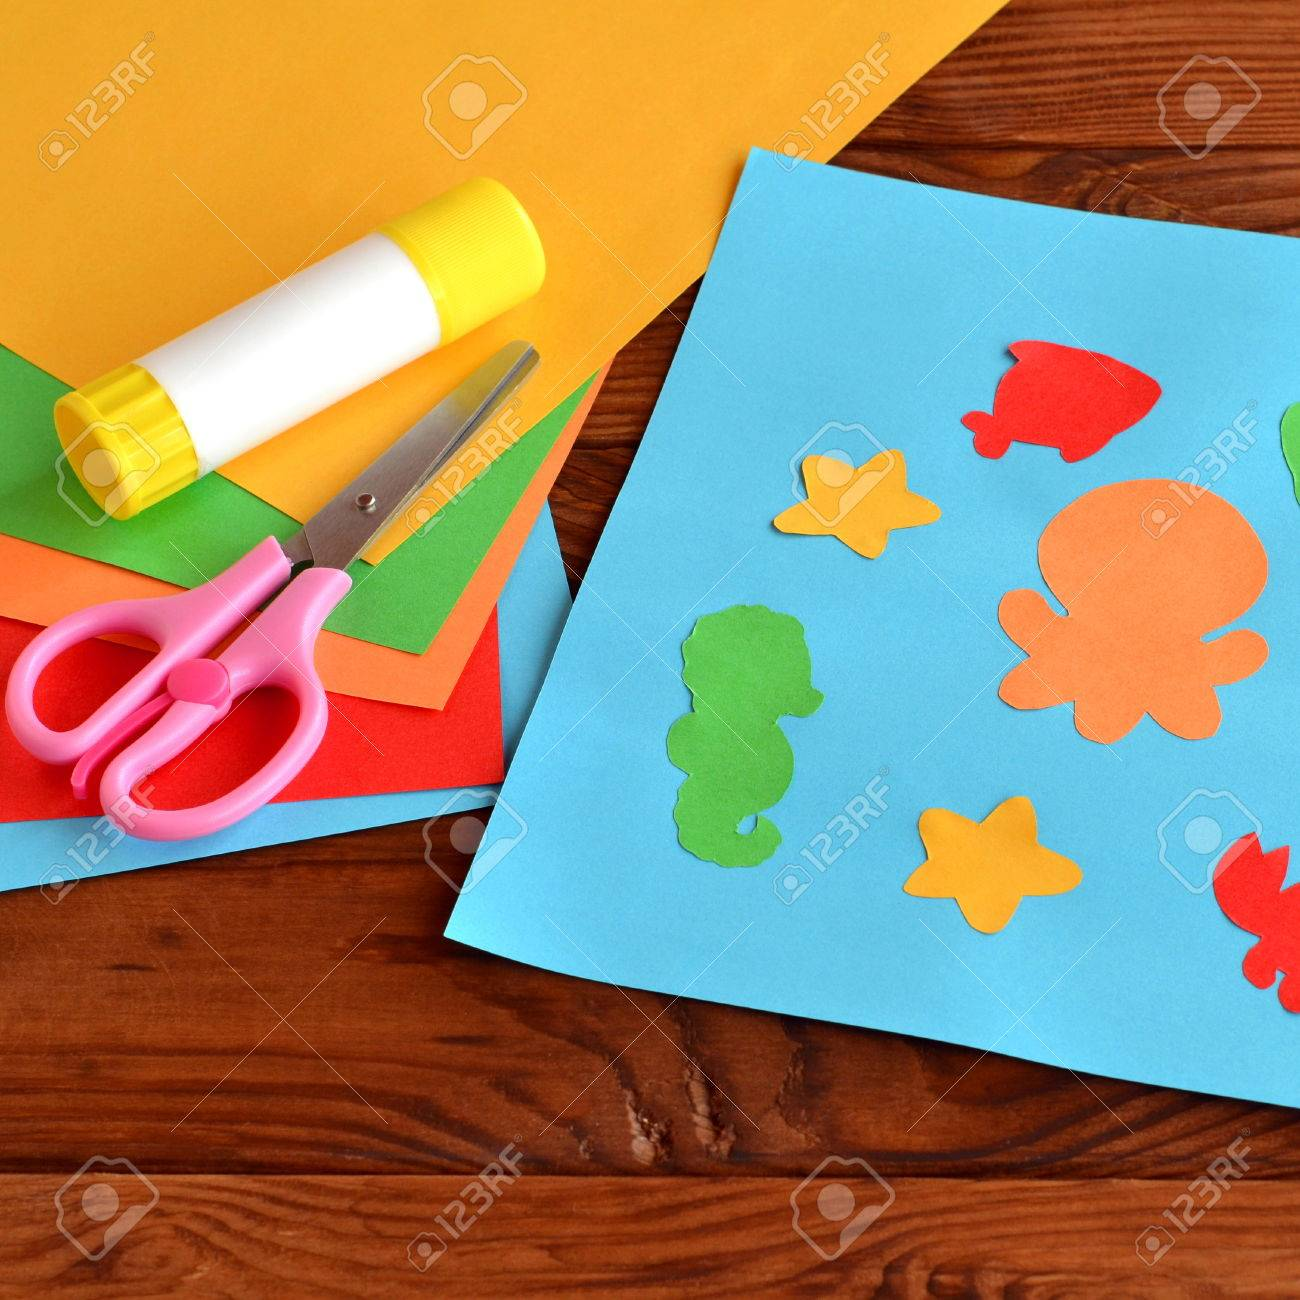 Paper Applique With Sea Animals And Fishes. Art Lesson In ...